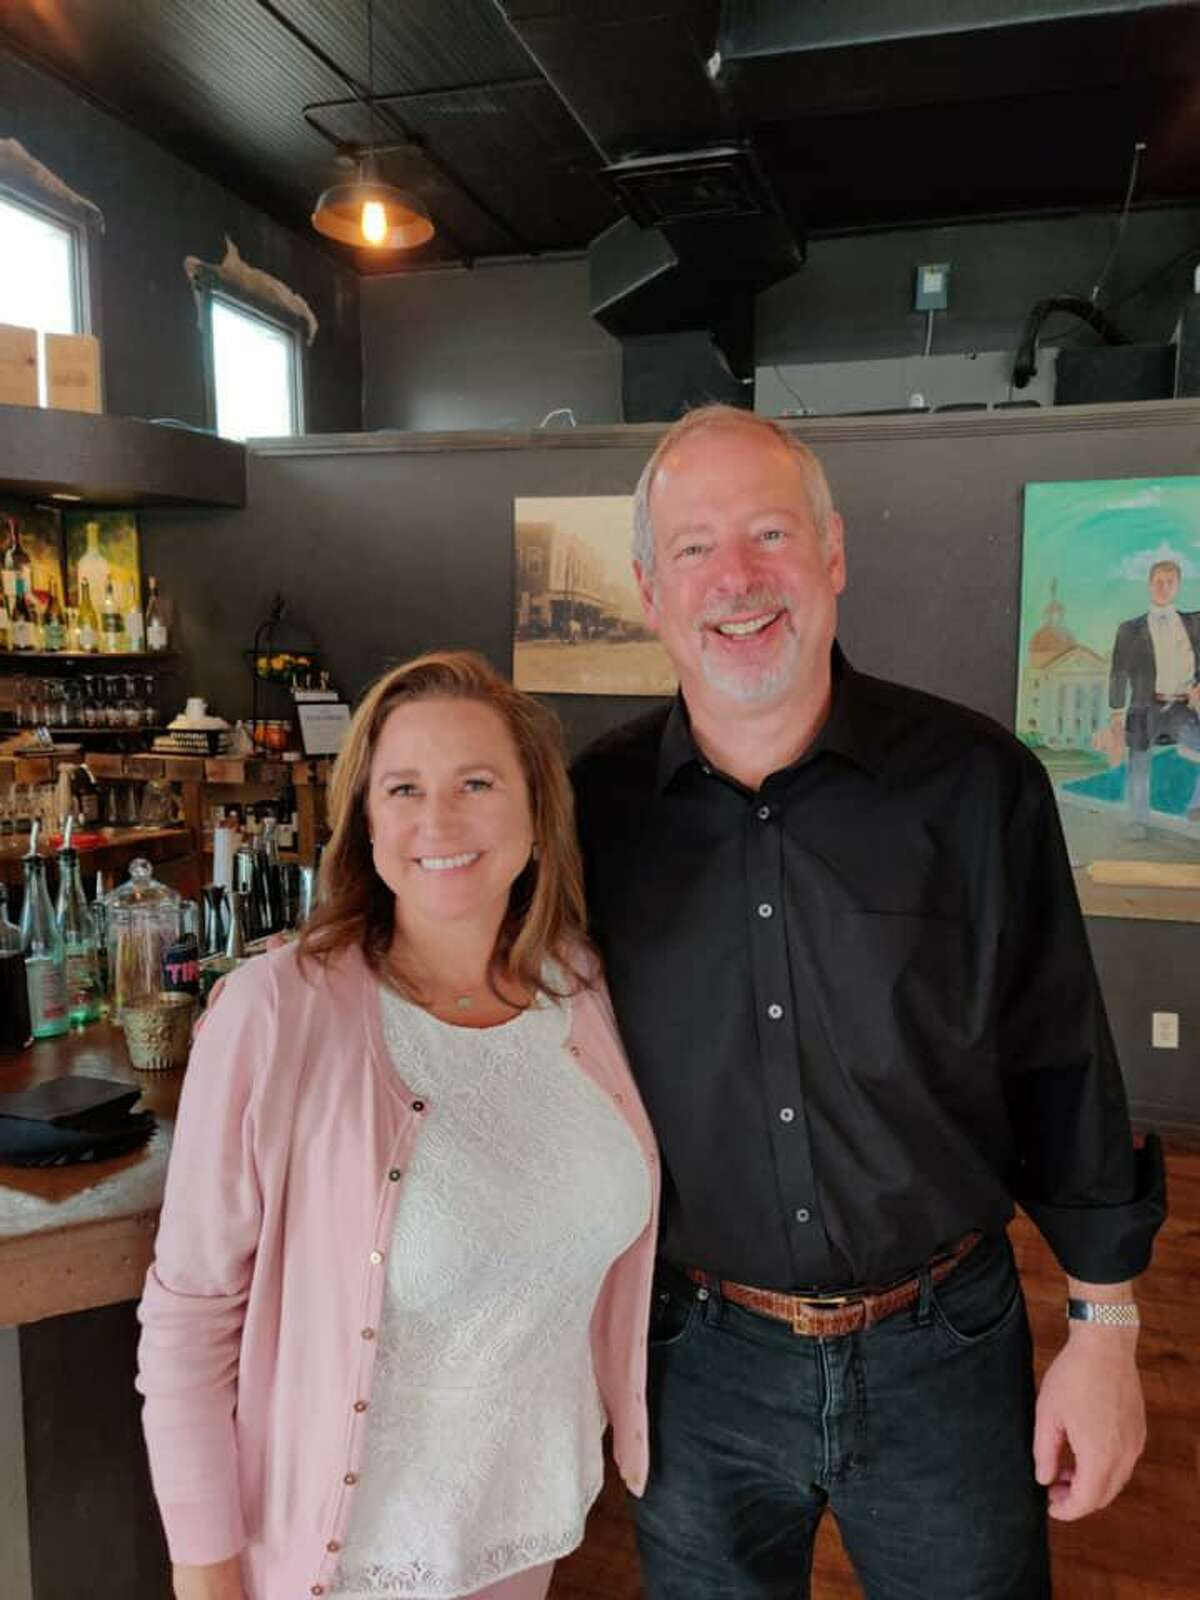 OakBend Medical Center's Joe Freudenberger, CEO, and Barbara Reed, Nursing Facility Quality Liaison, enjoy brunch at Sandy McGee's as part of Restaurant Month. The month serves as a fundraiser for OakBend Medical Center.